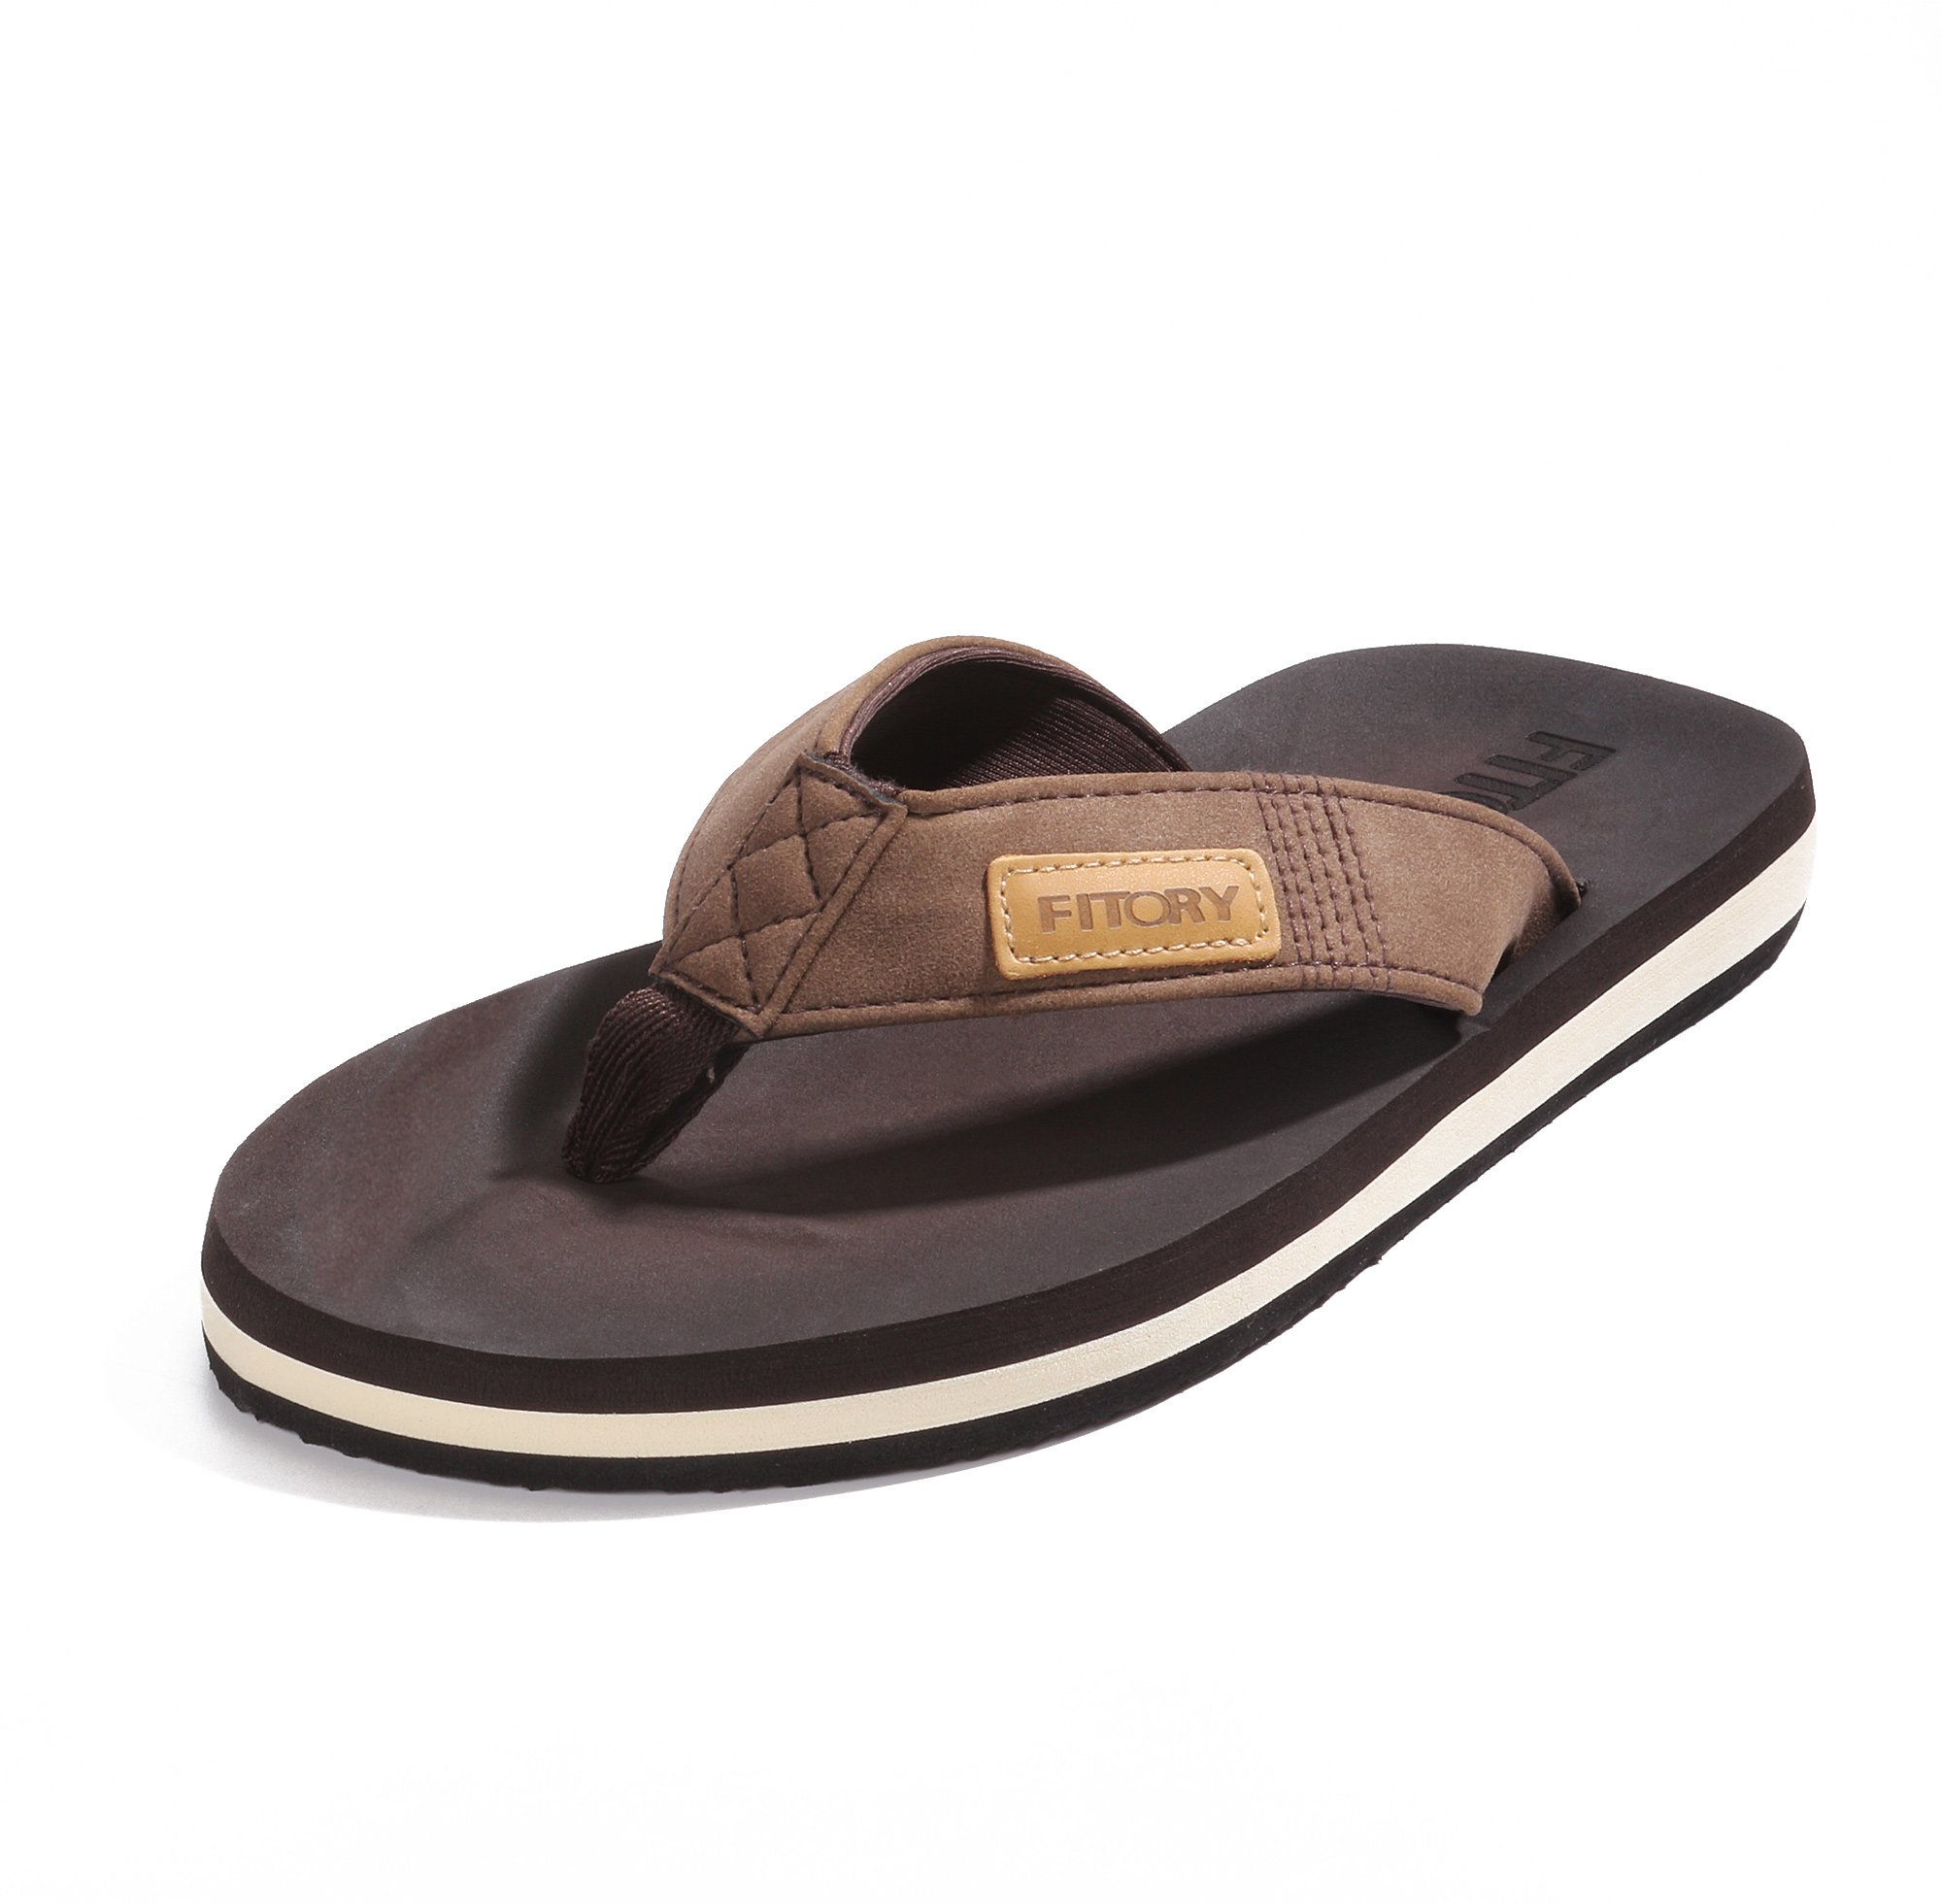 FITORY Men's Flip-Flop Thong Sandals with Arch Support Light Weight Beach Slippers